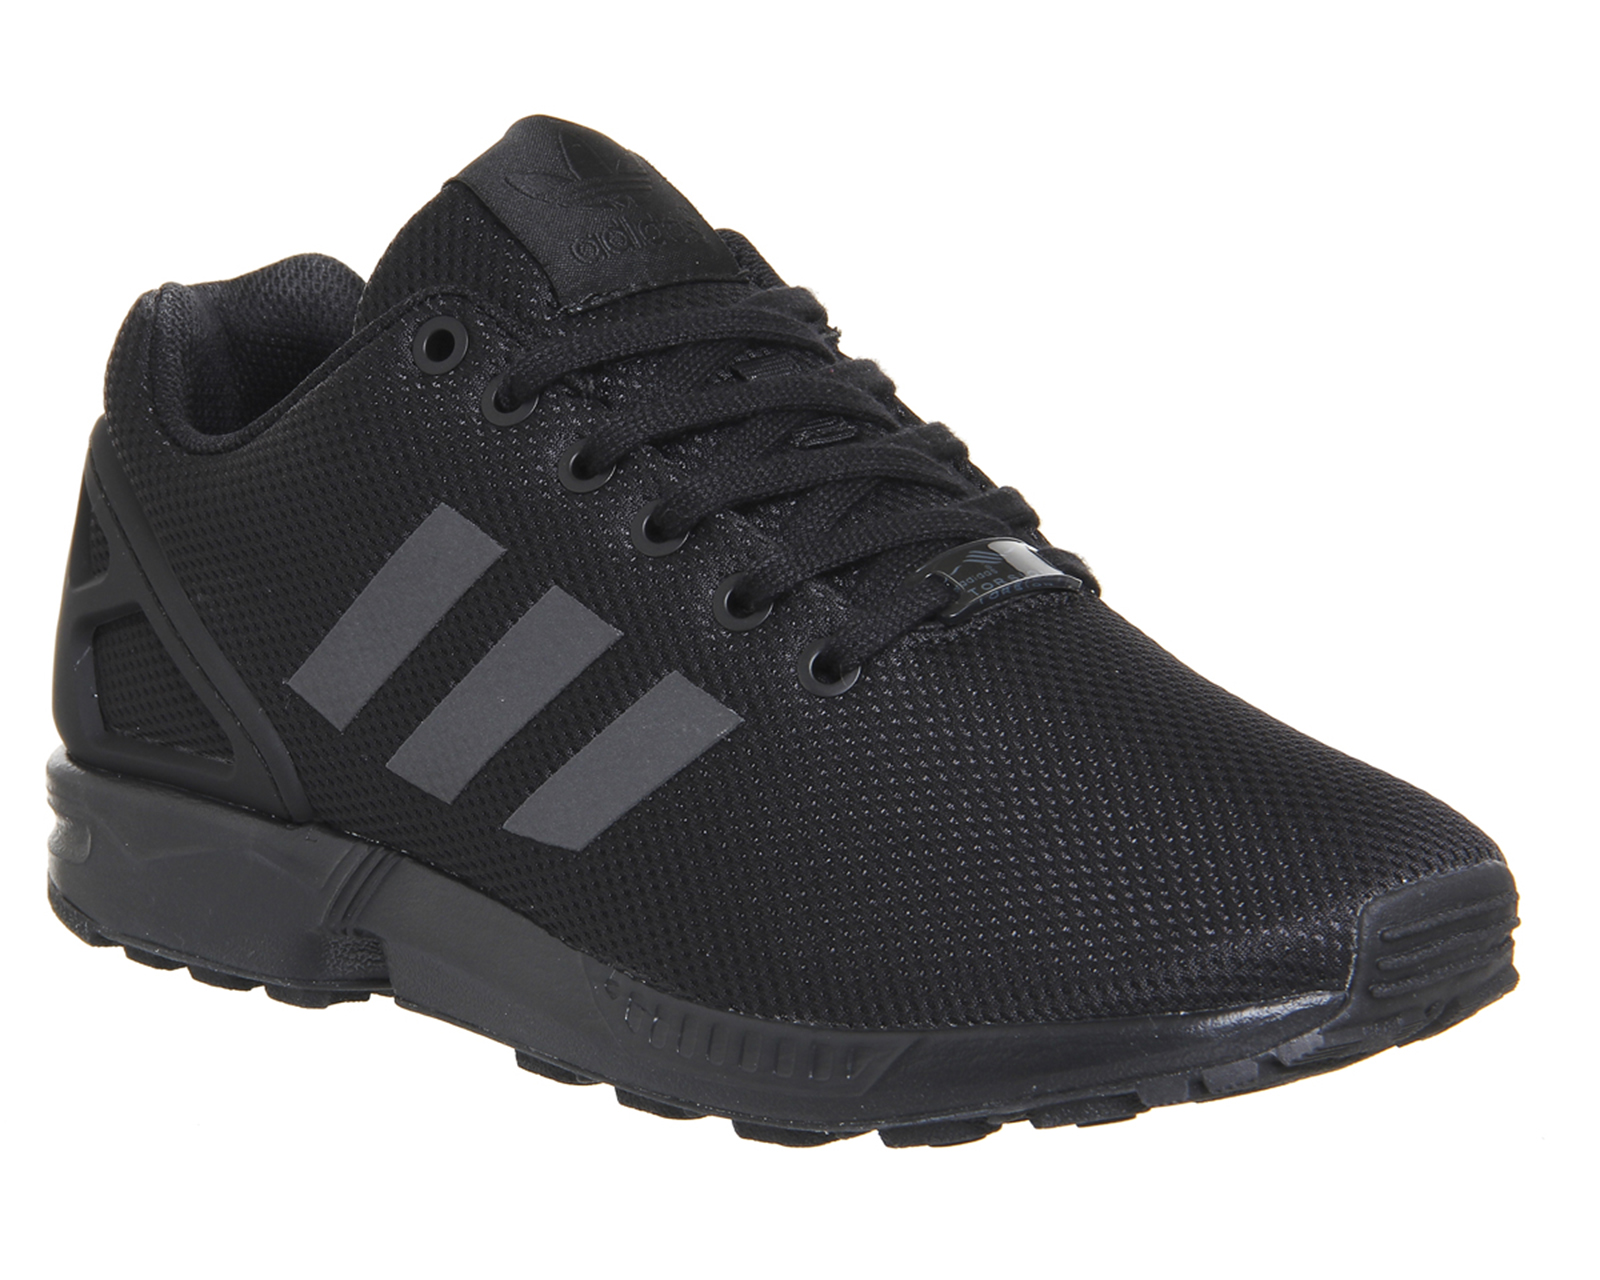 mens adidas zx flux black trainers shoes ebay. Black Bedroom Furniture Sets. Home Design Ideas